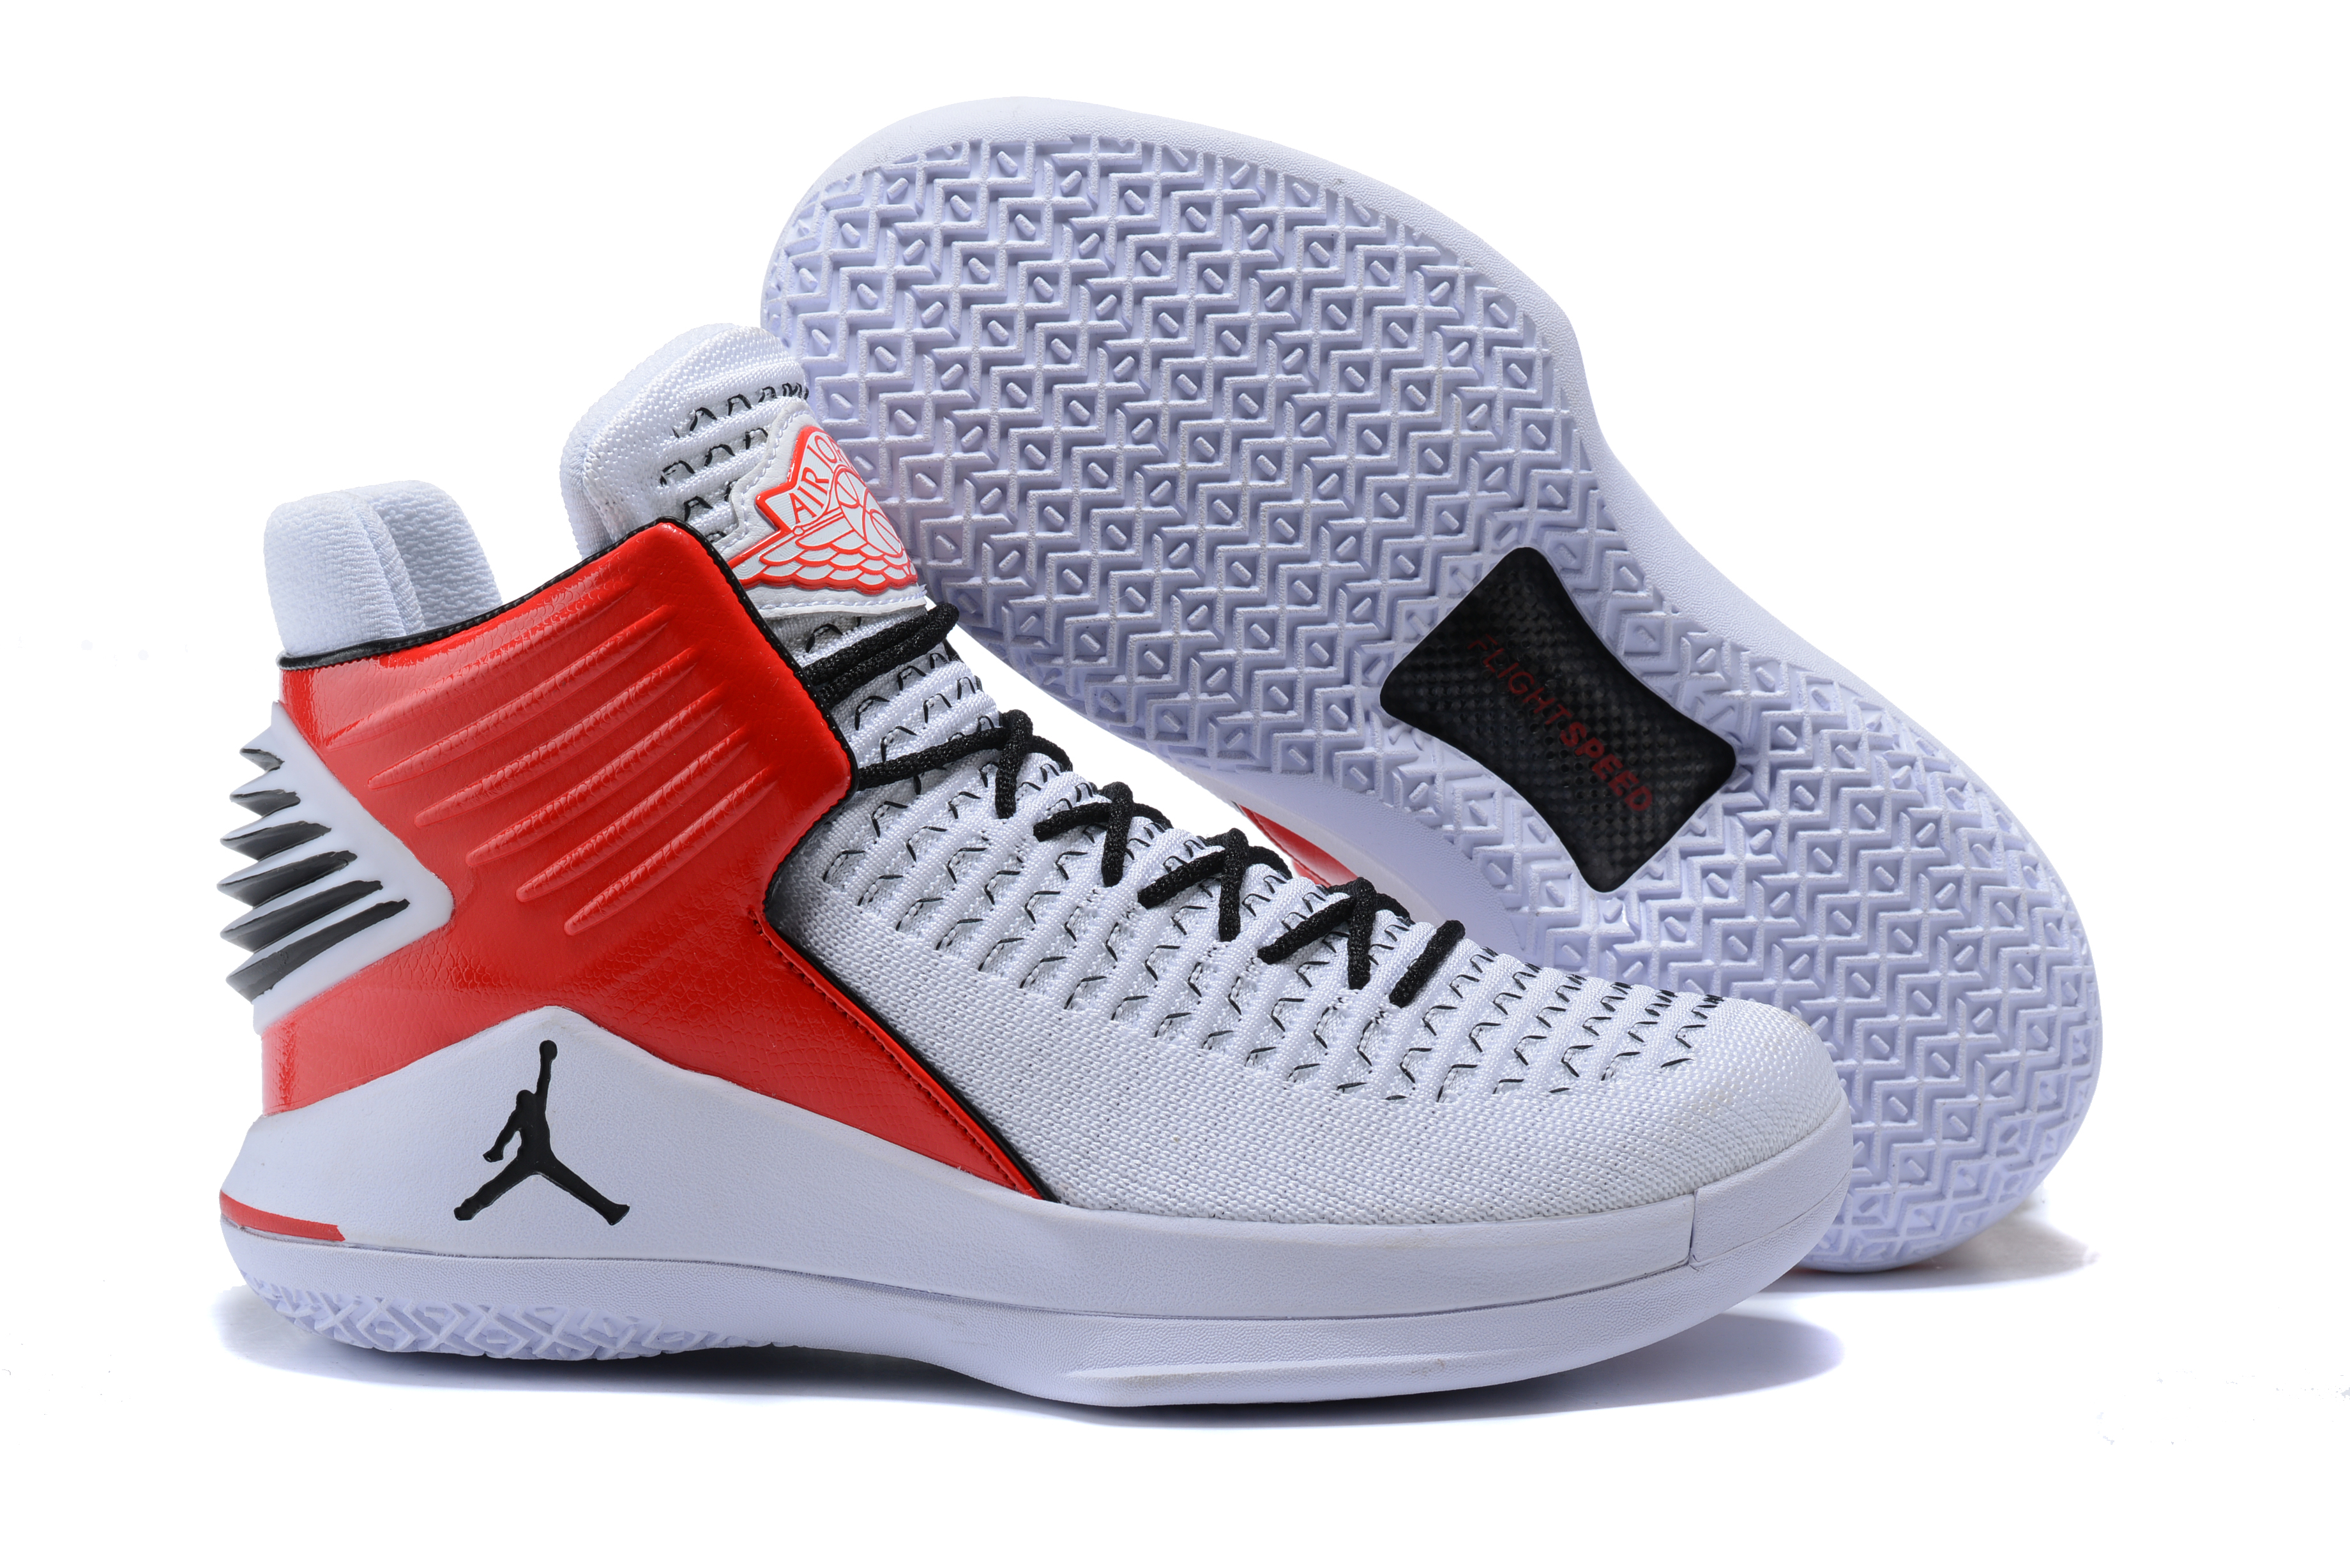 New Air Jordan 32 High White Red Black